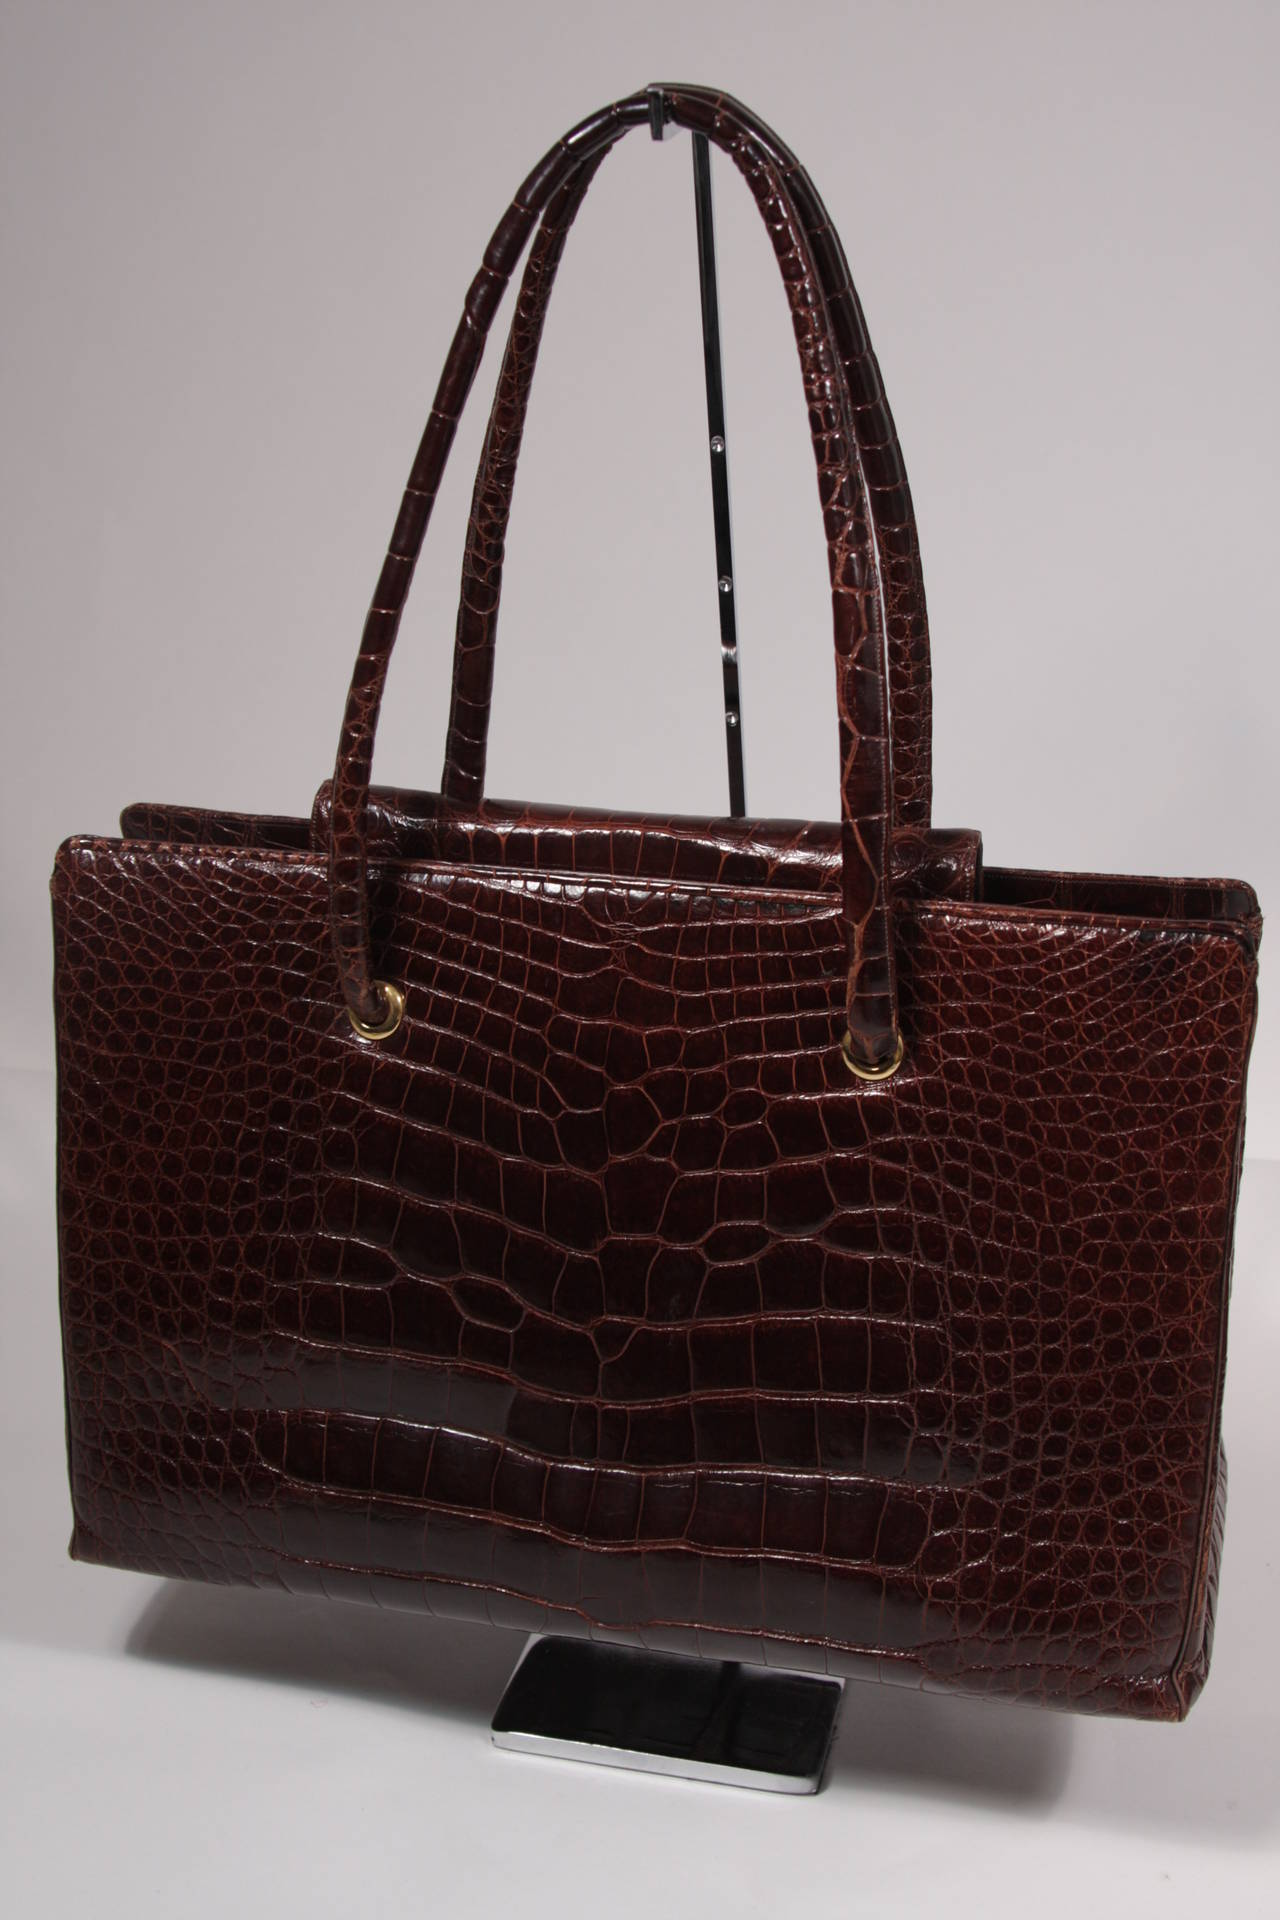 Judith Leiber Extra Large Chocolate Crocodile Shoulder Bag with Snap Top 2